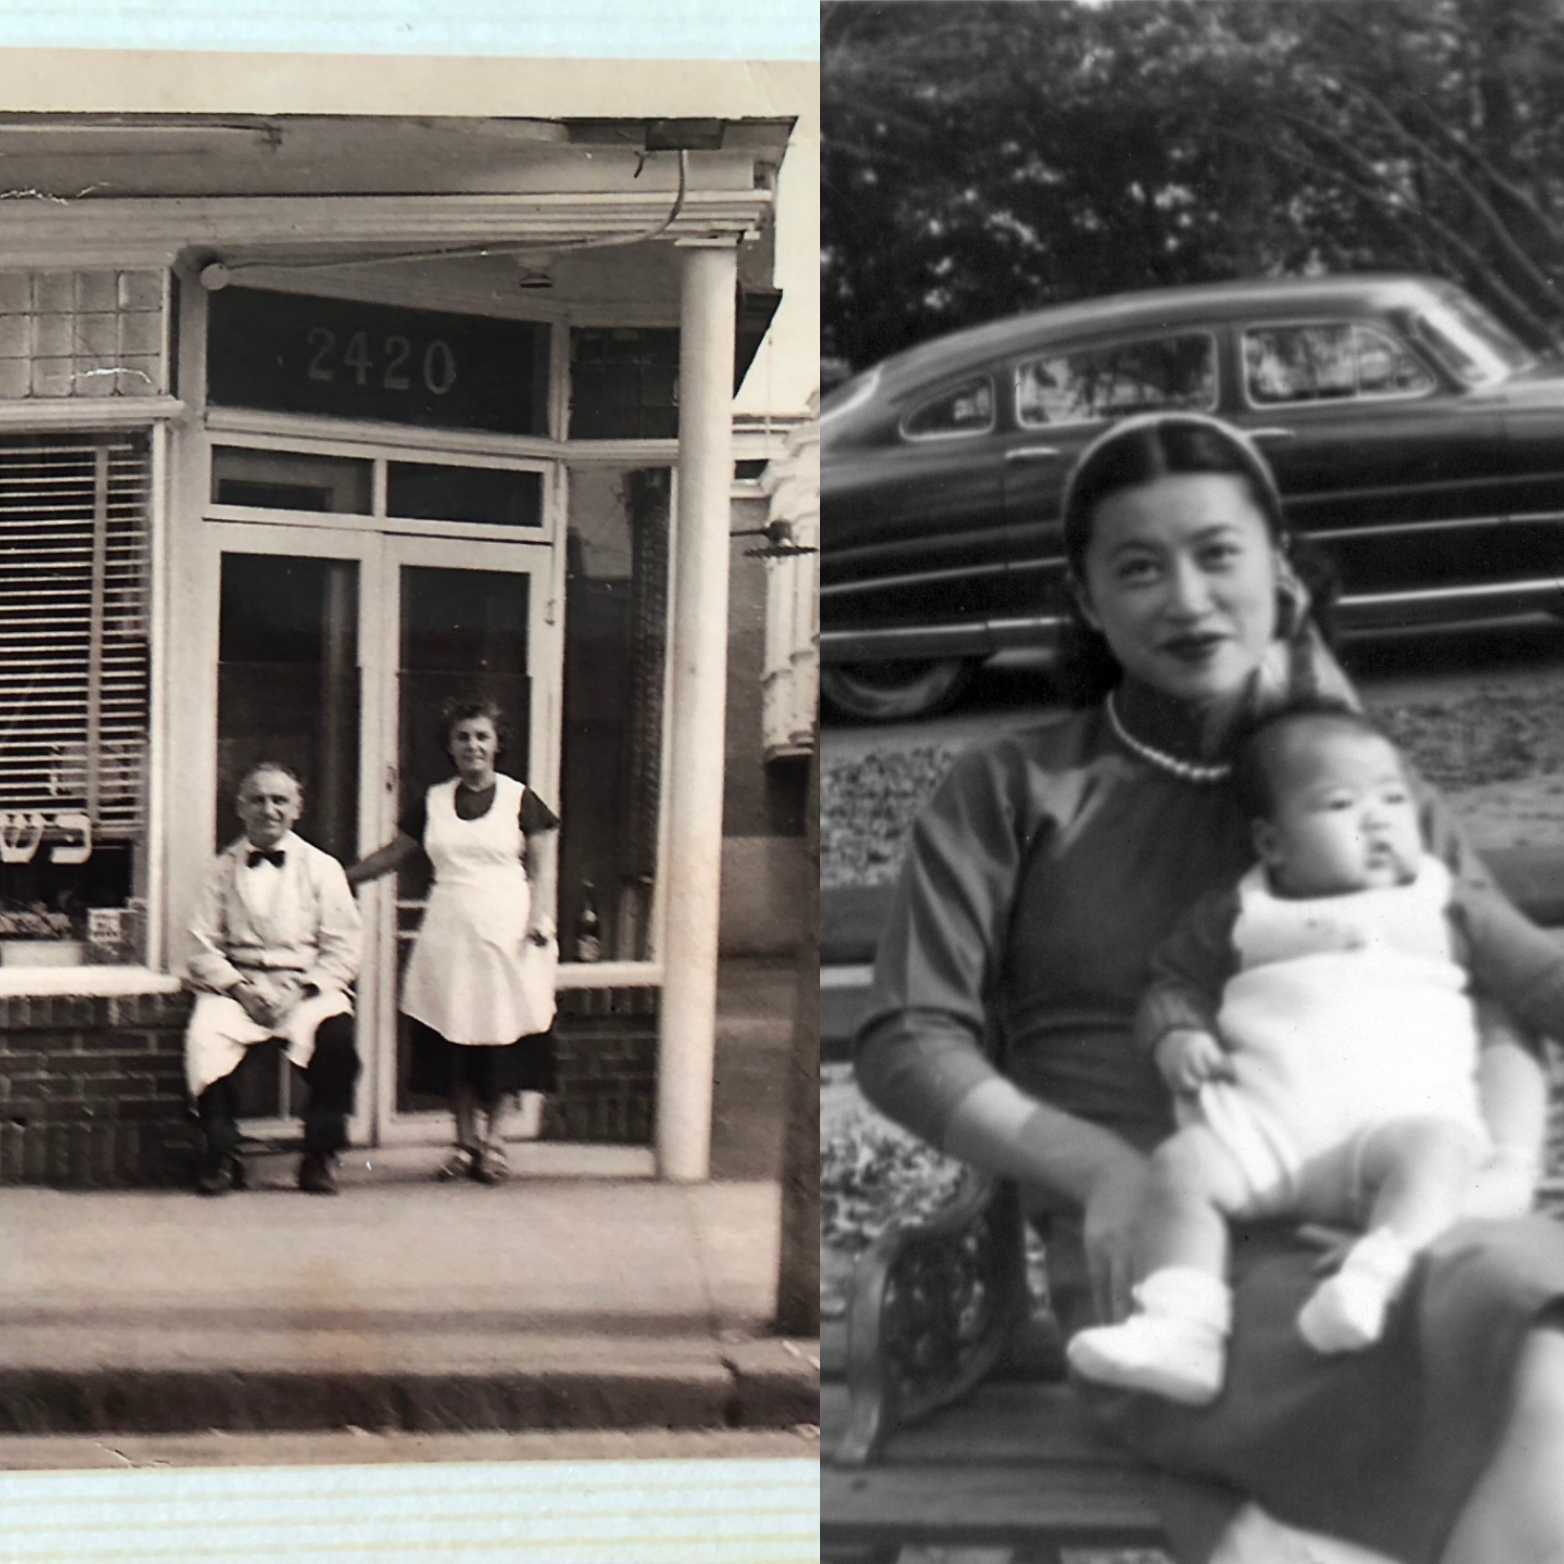 Caption: Left: Wilson Dairy Restaurant Right: Helen Zia as baby with mom